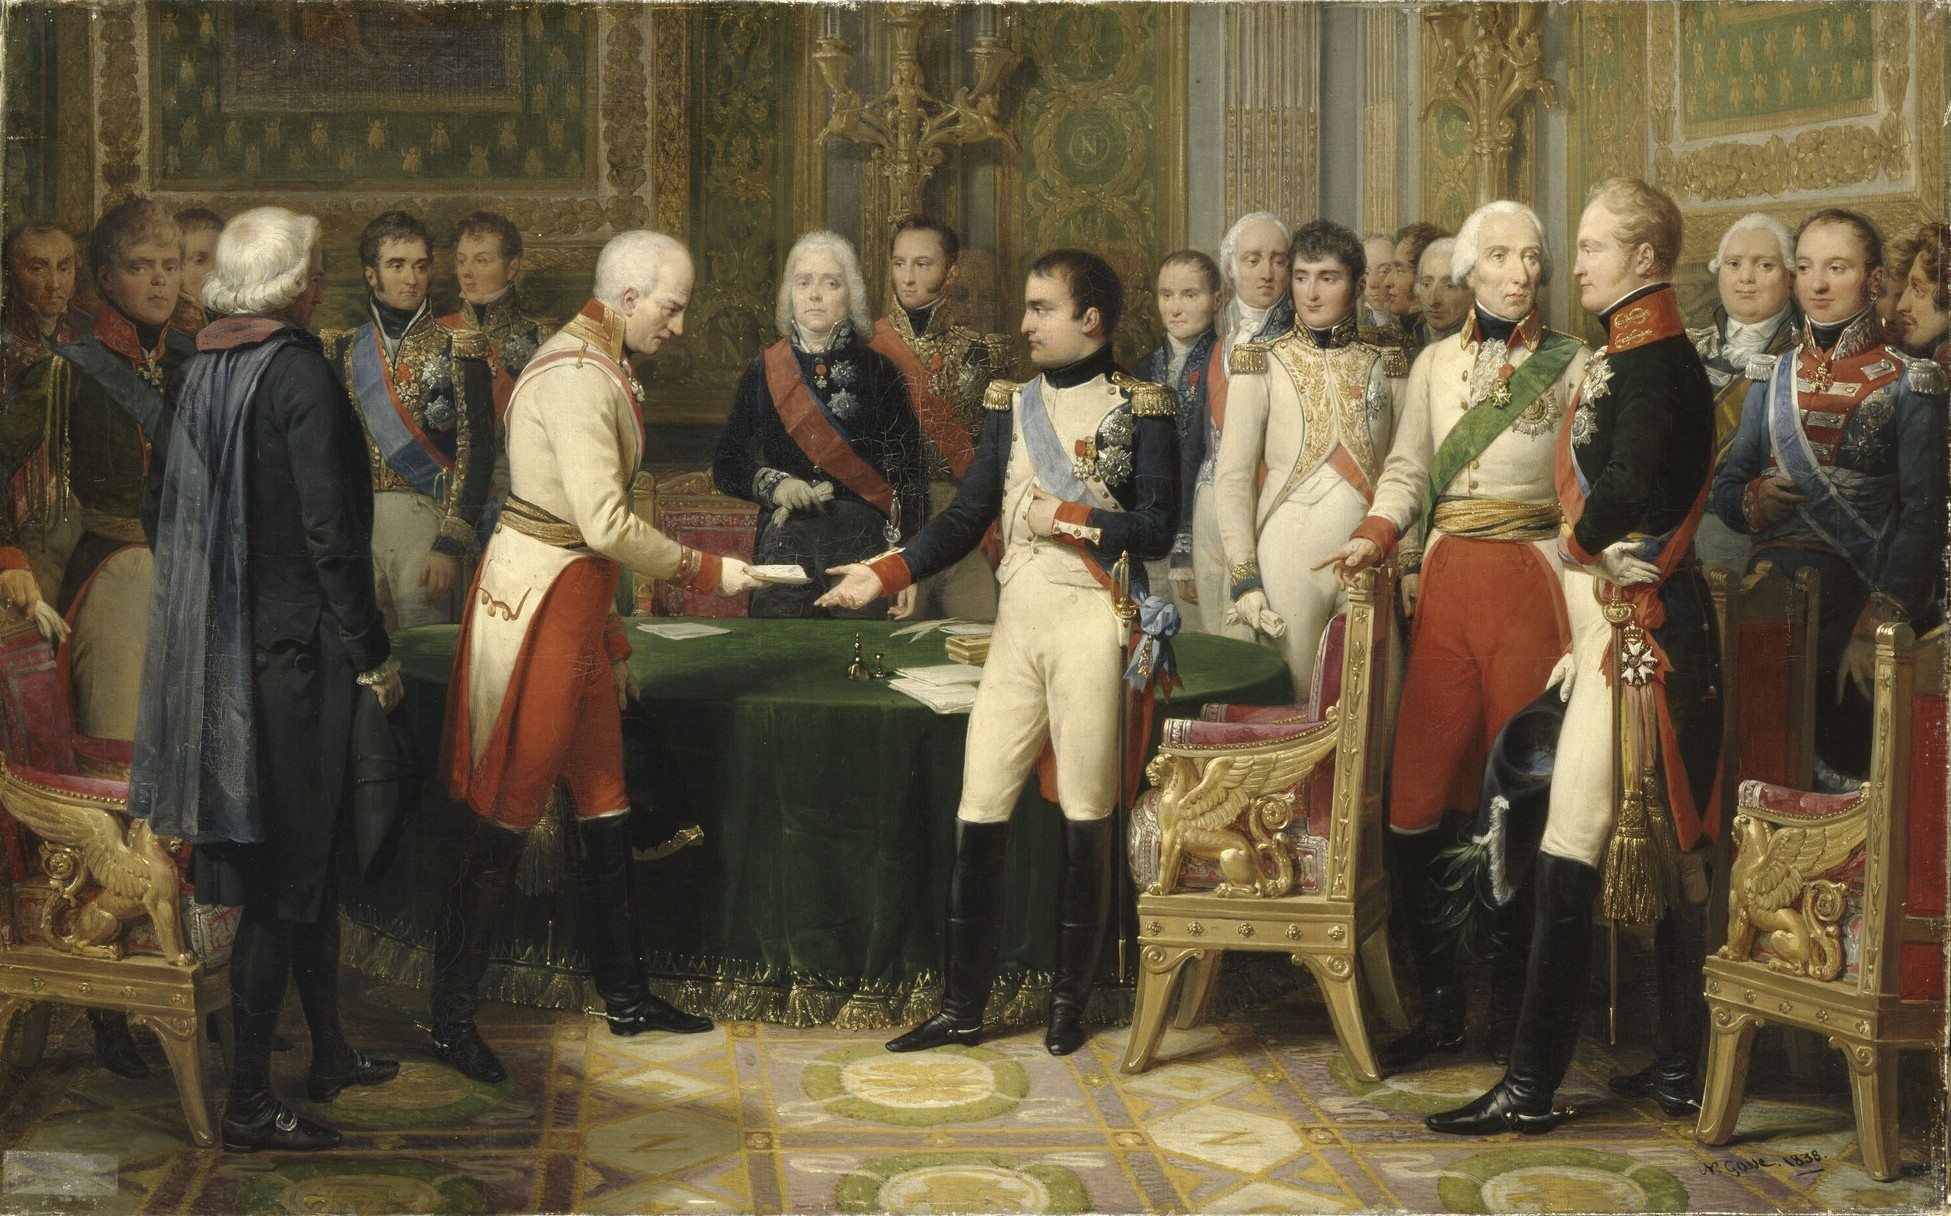 compare and contrast the foreign policy goals and achievements of metternich 1815 1848 and bismarck